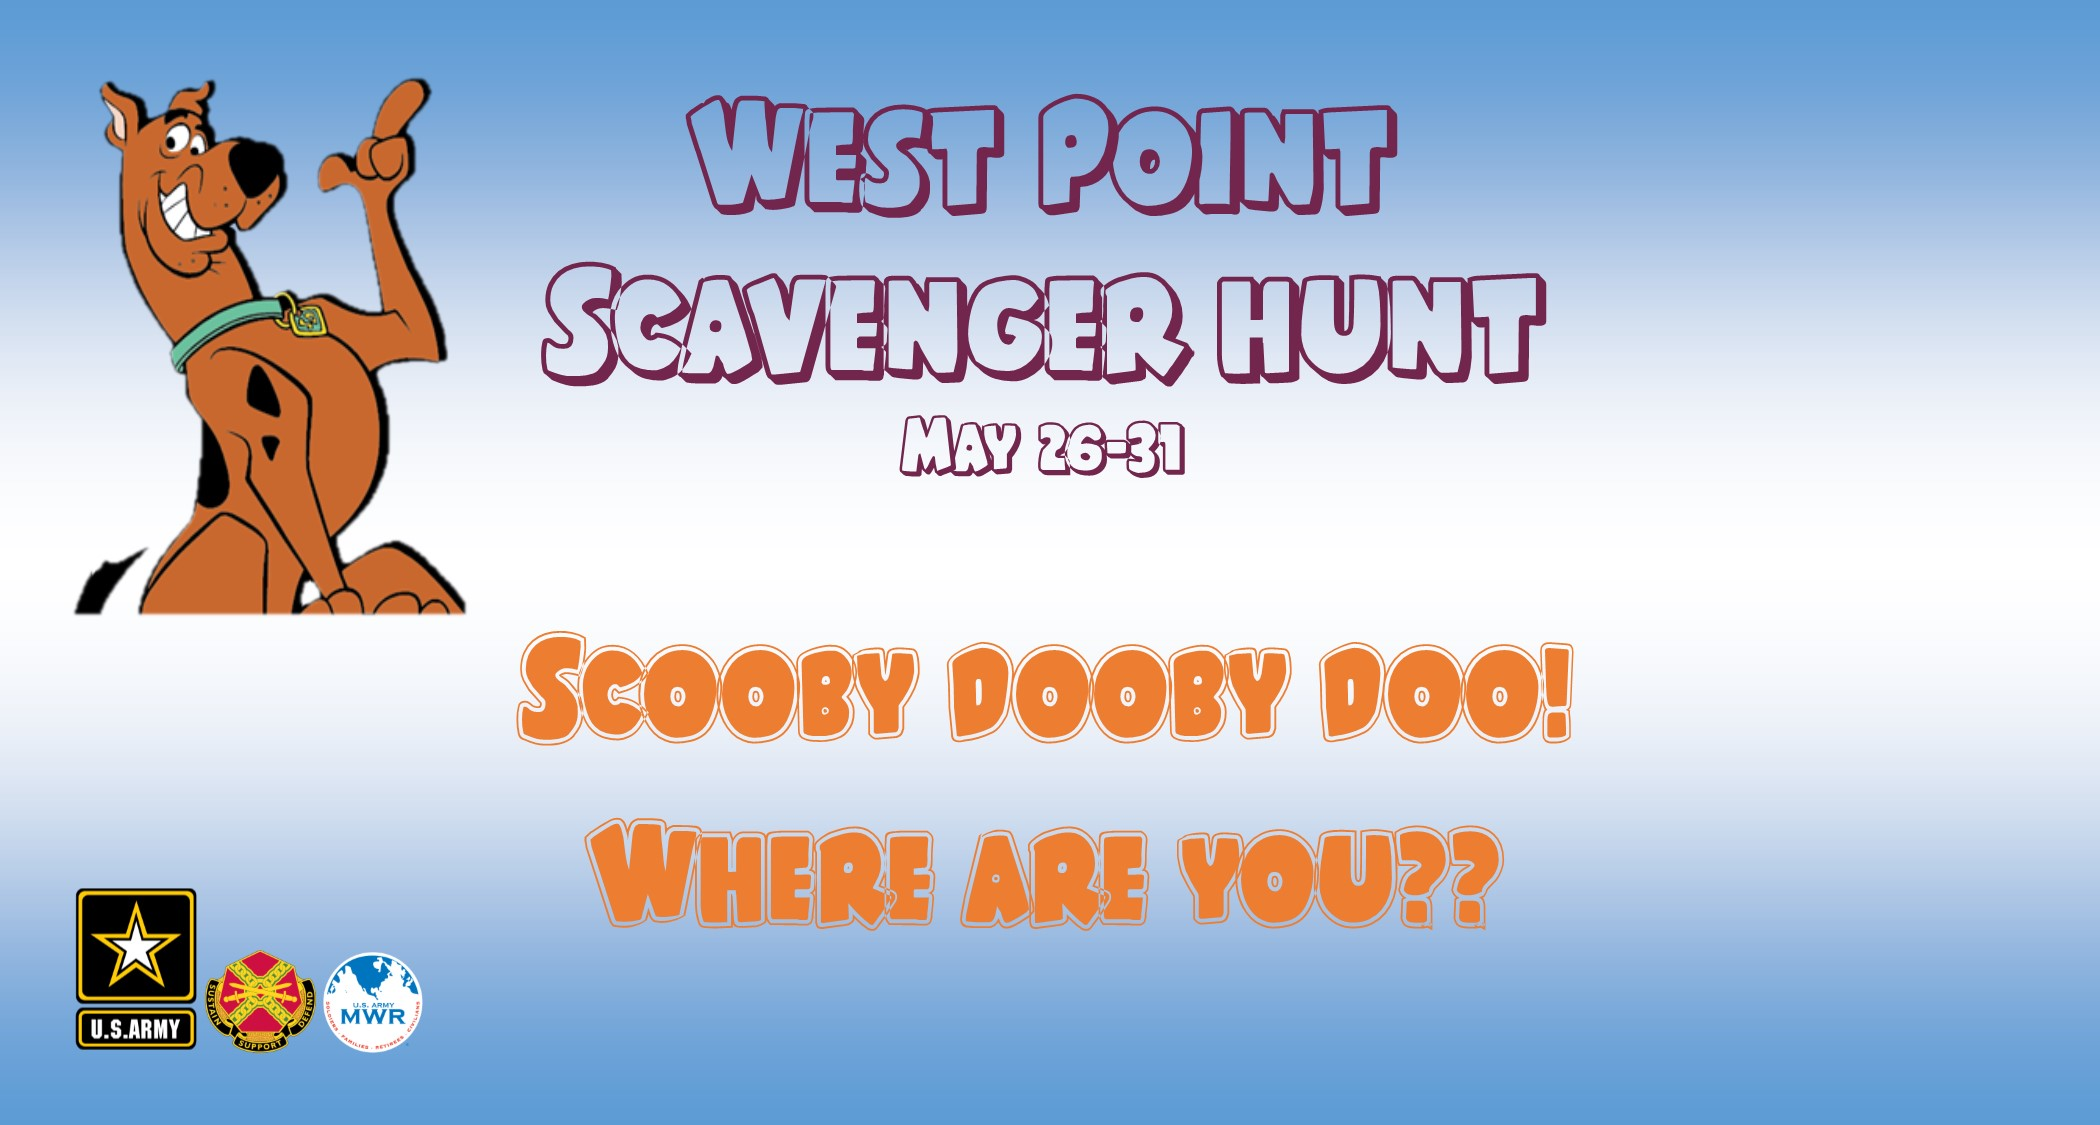 West Point Photo Scavenger Hunt (Where's Scooby?)